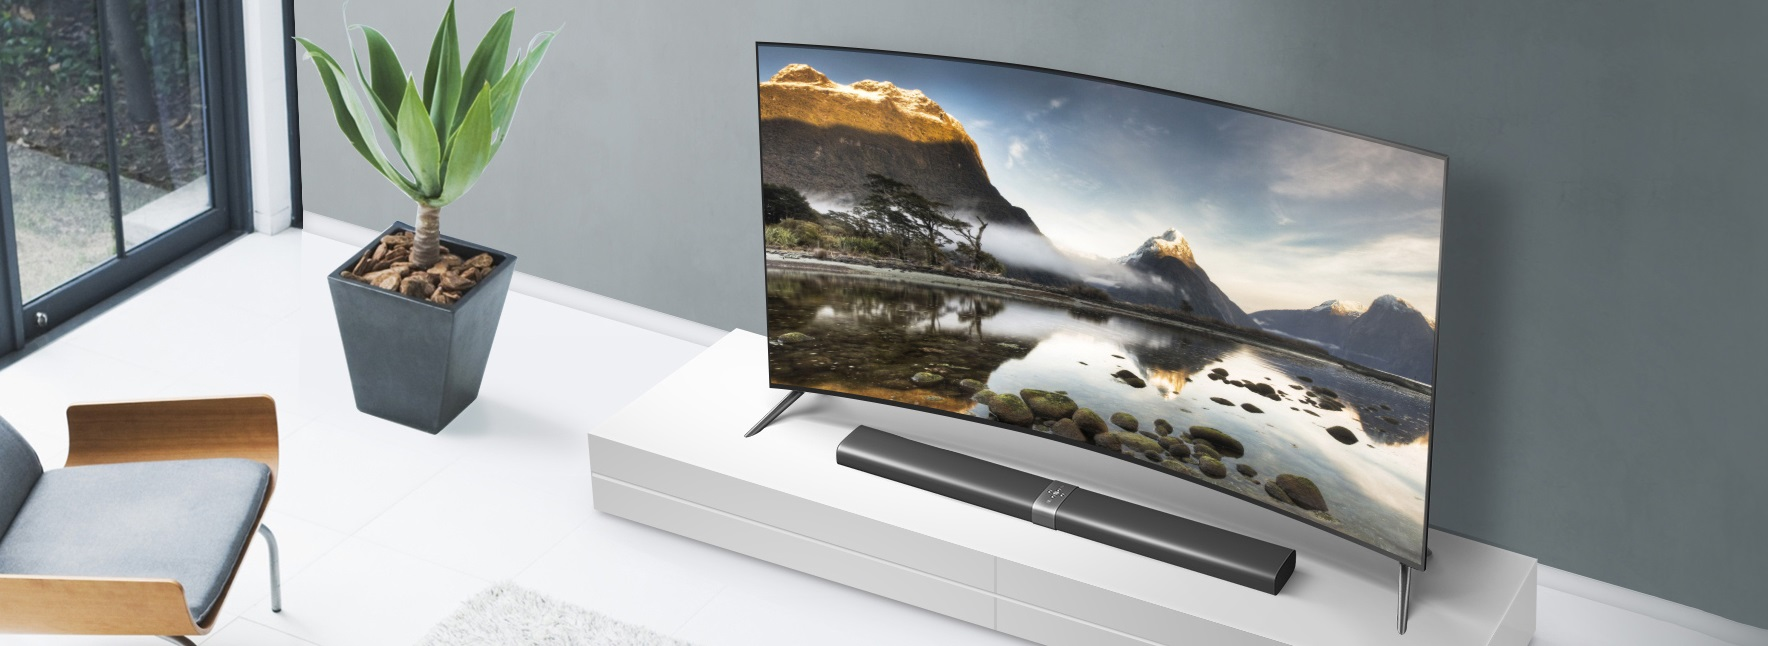 dimension - 65 Inch Curved Tv